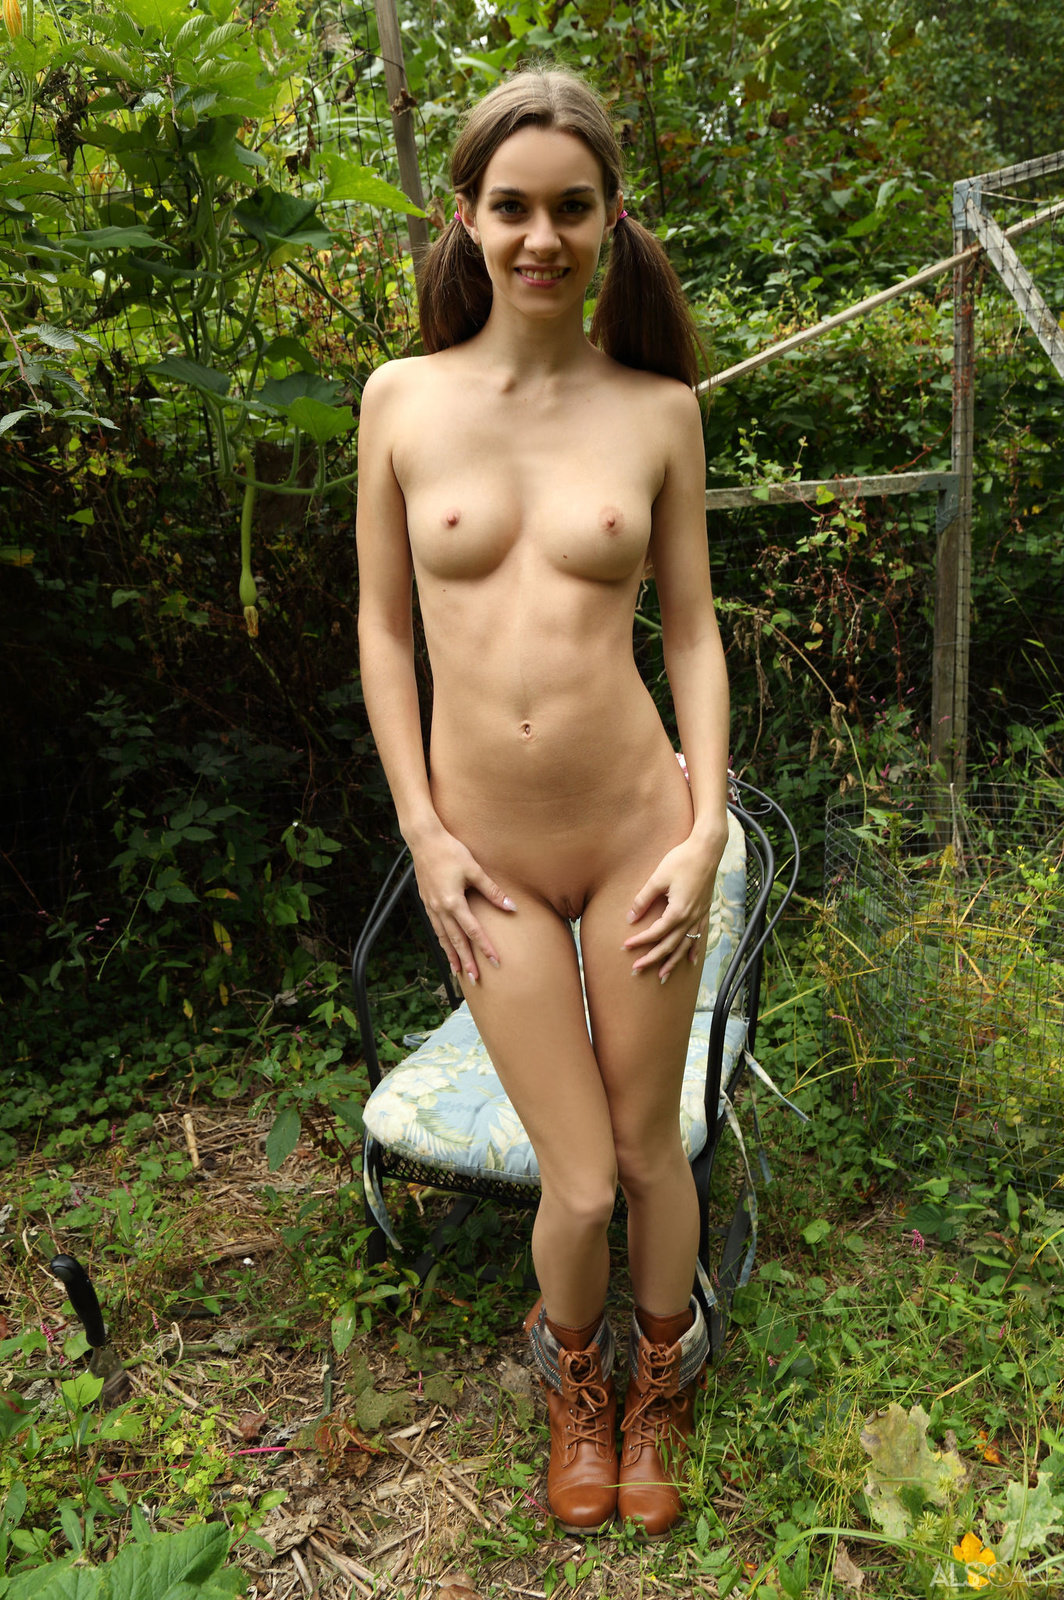 Tali Dova In Farm Girl By Als Scan 16 Photos  Erotic -5236